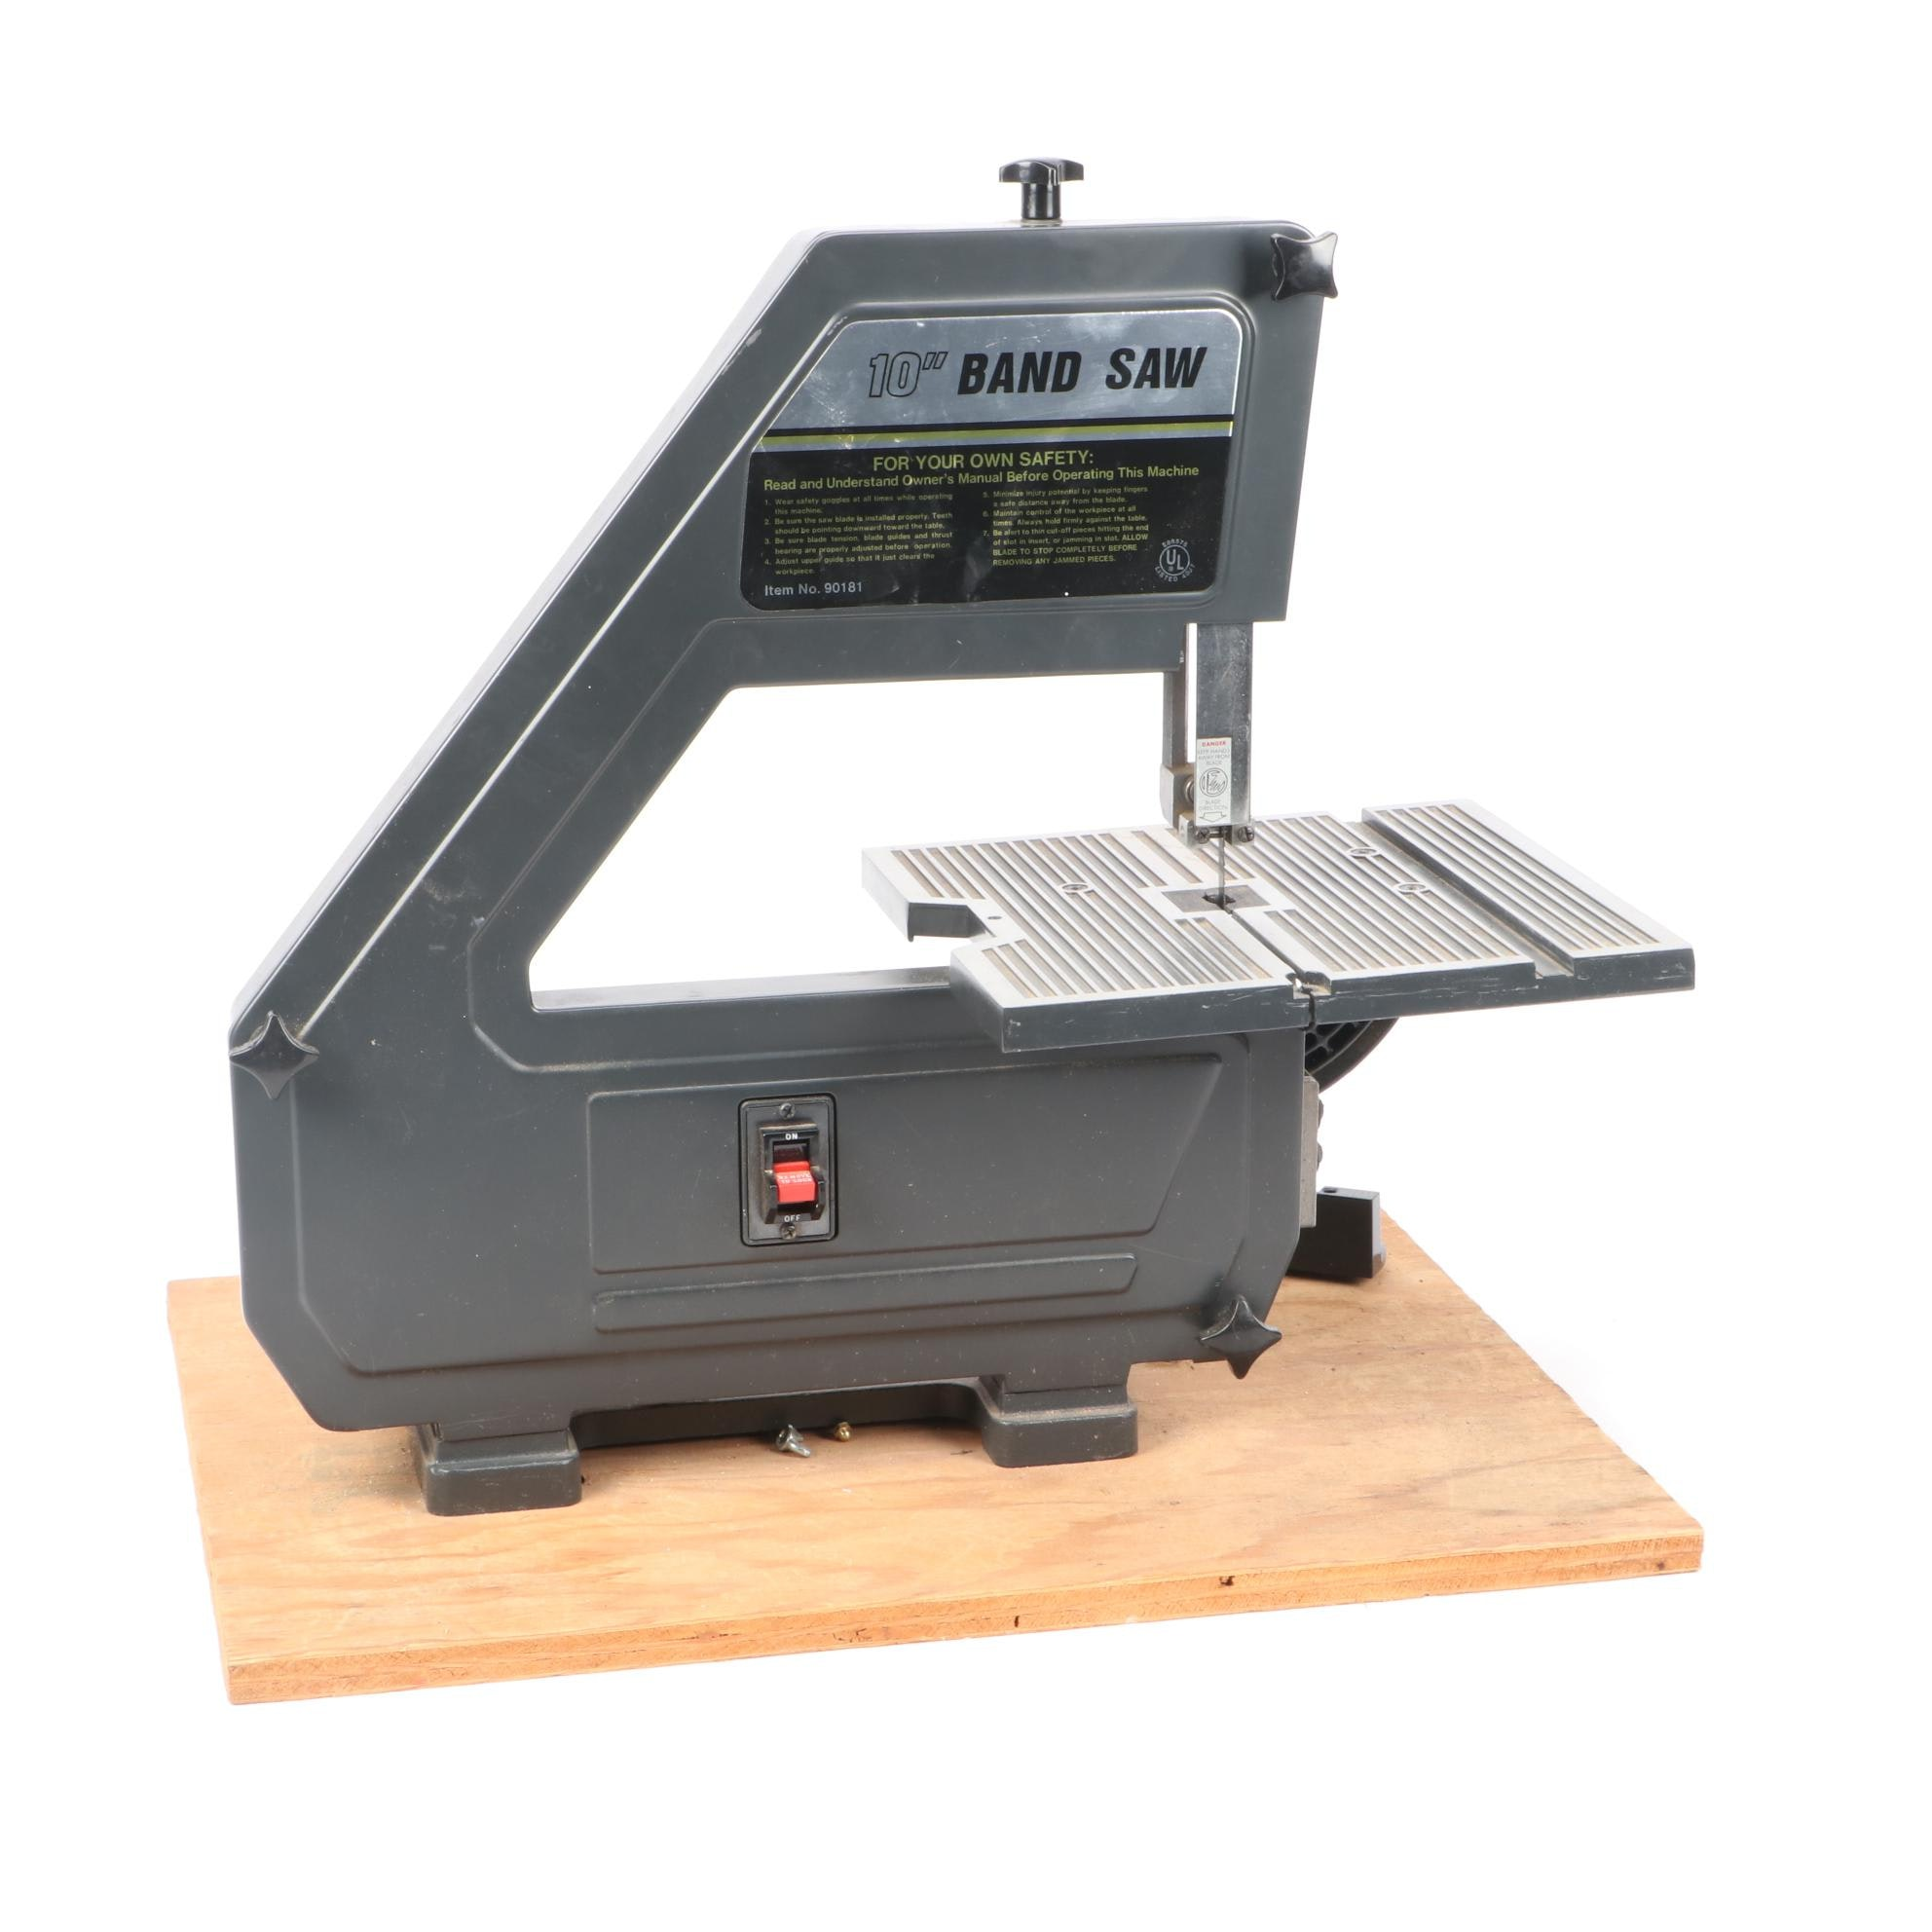 Ten Inch Band Saw